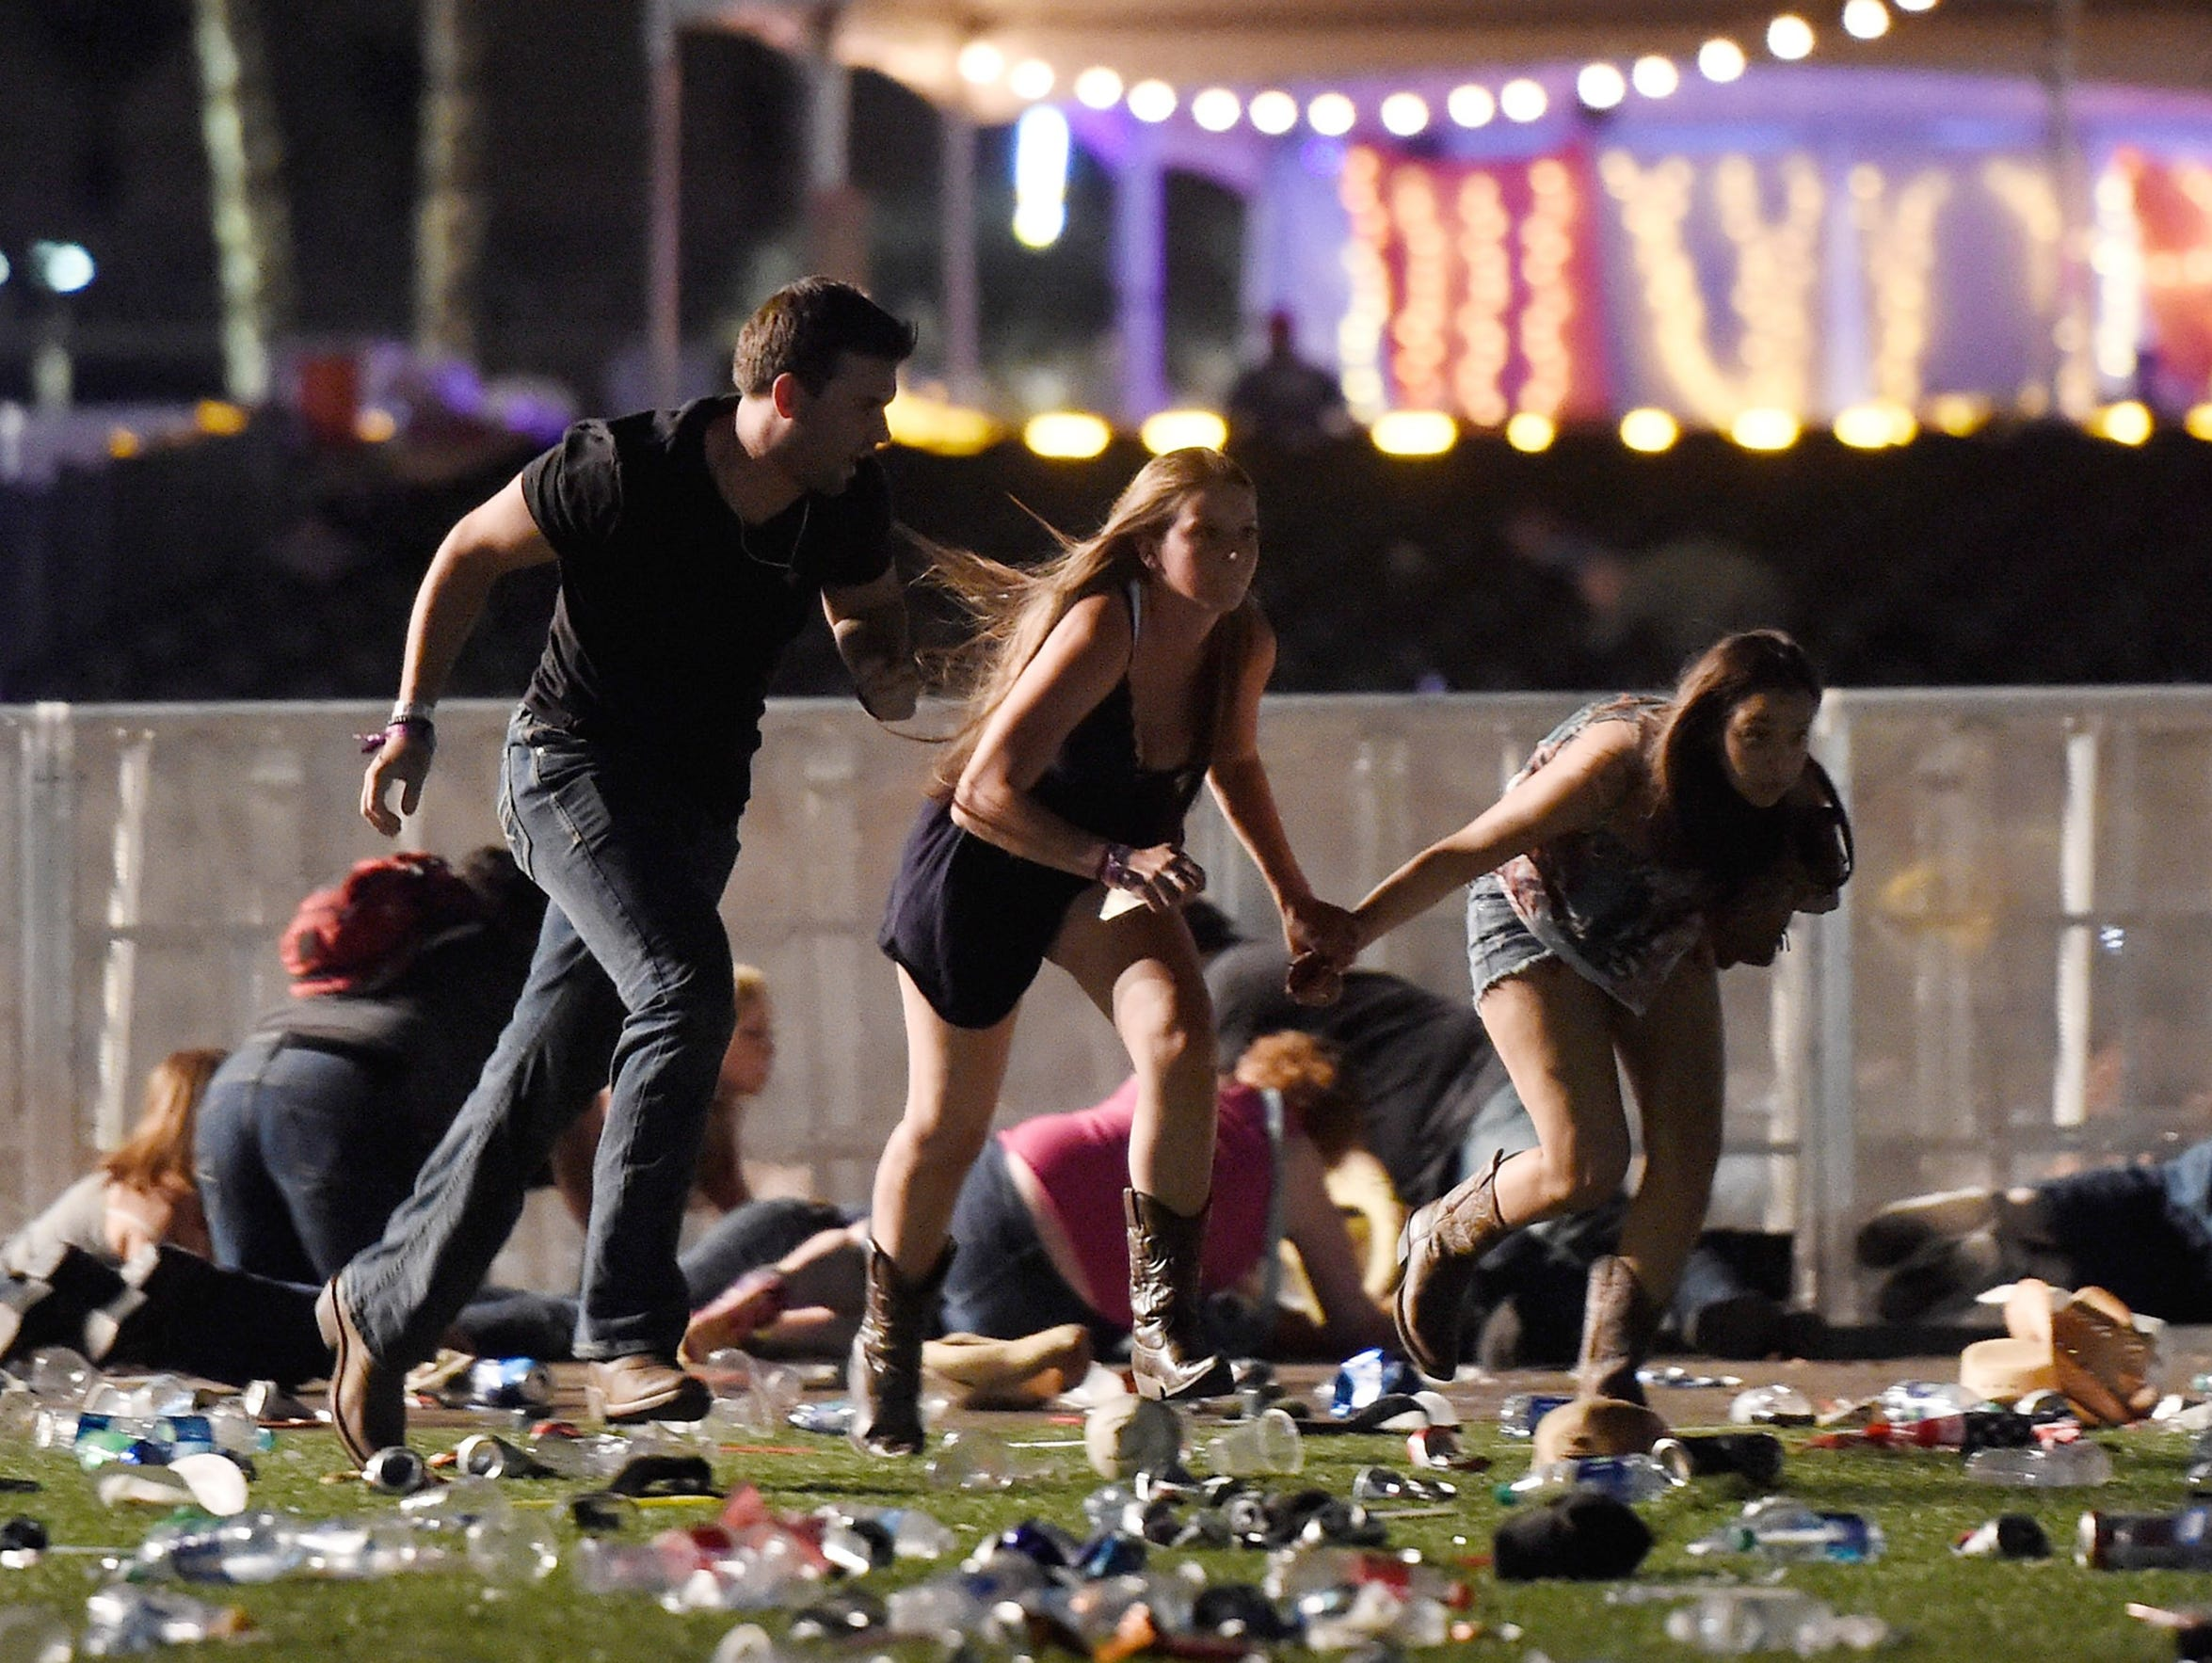 People run from the Route 91 Harvest country music festival after a gunman opened fire on the crowd. Angelica Soto and Carmen Alegria (not pictured) were among more than 400 people injured by gunfire. Fifty-eight people died in the assault. The new podcast Aftermath explores gun violence in America by focusing on survivors.